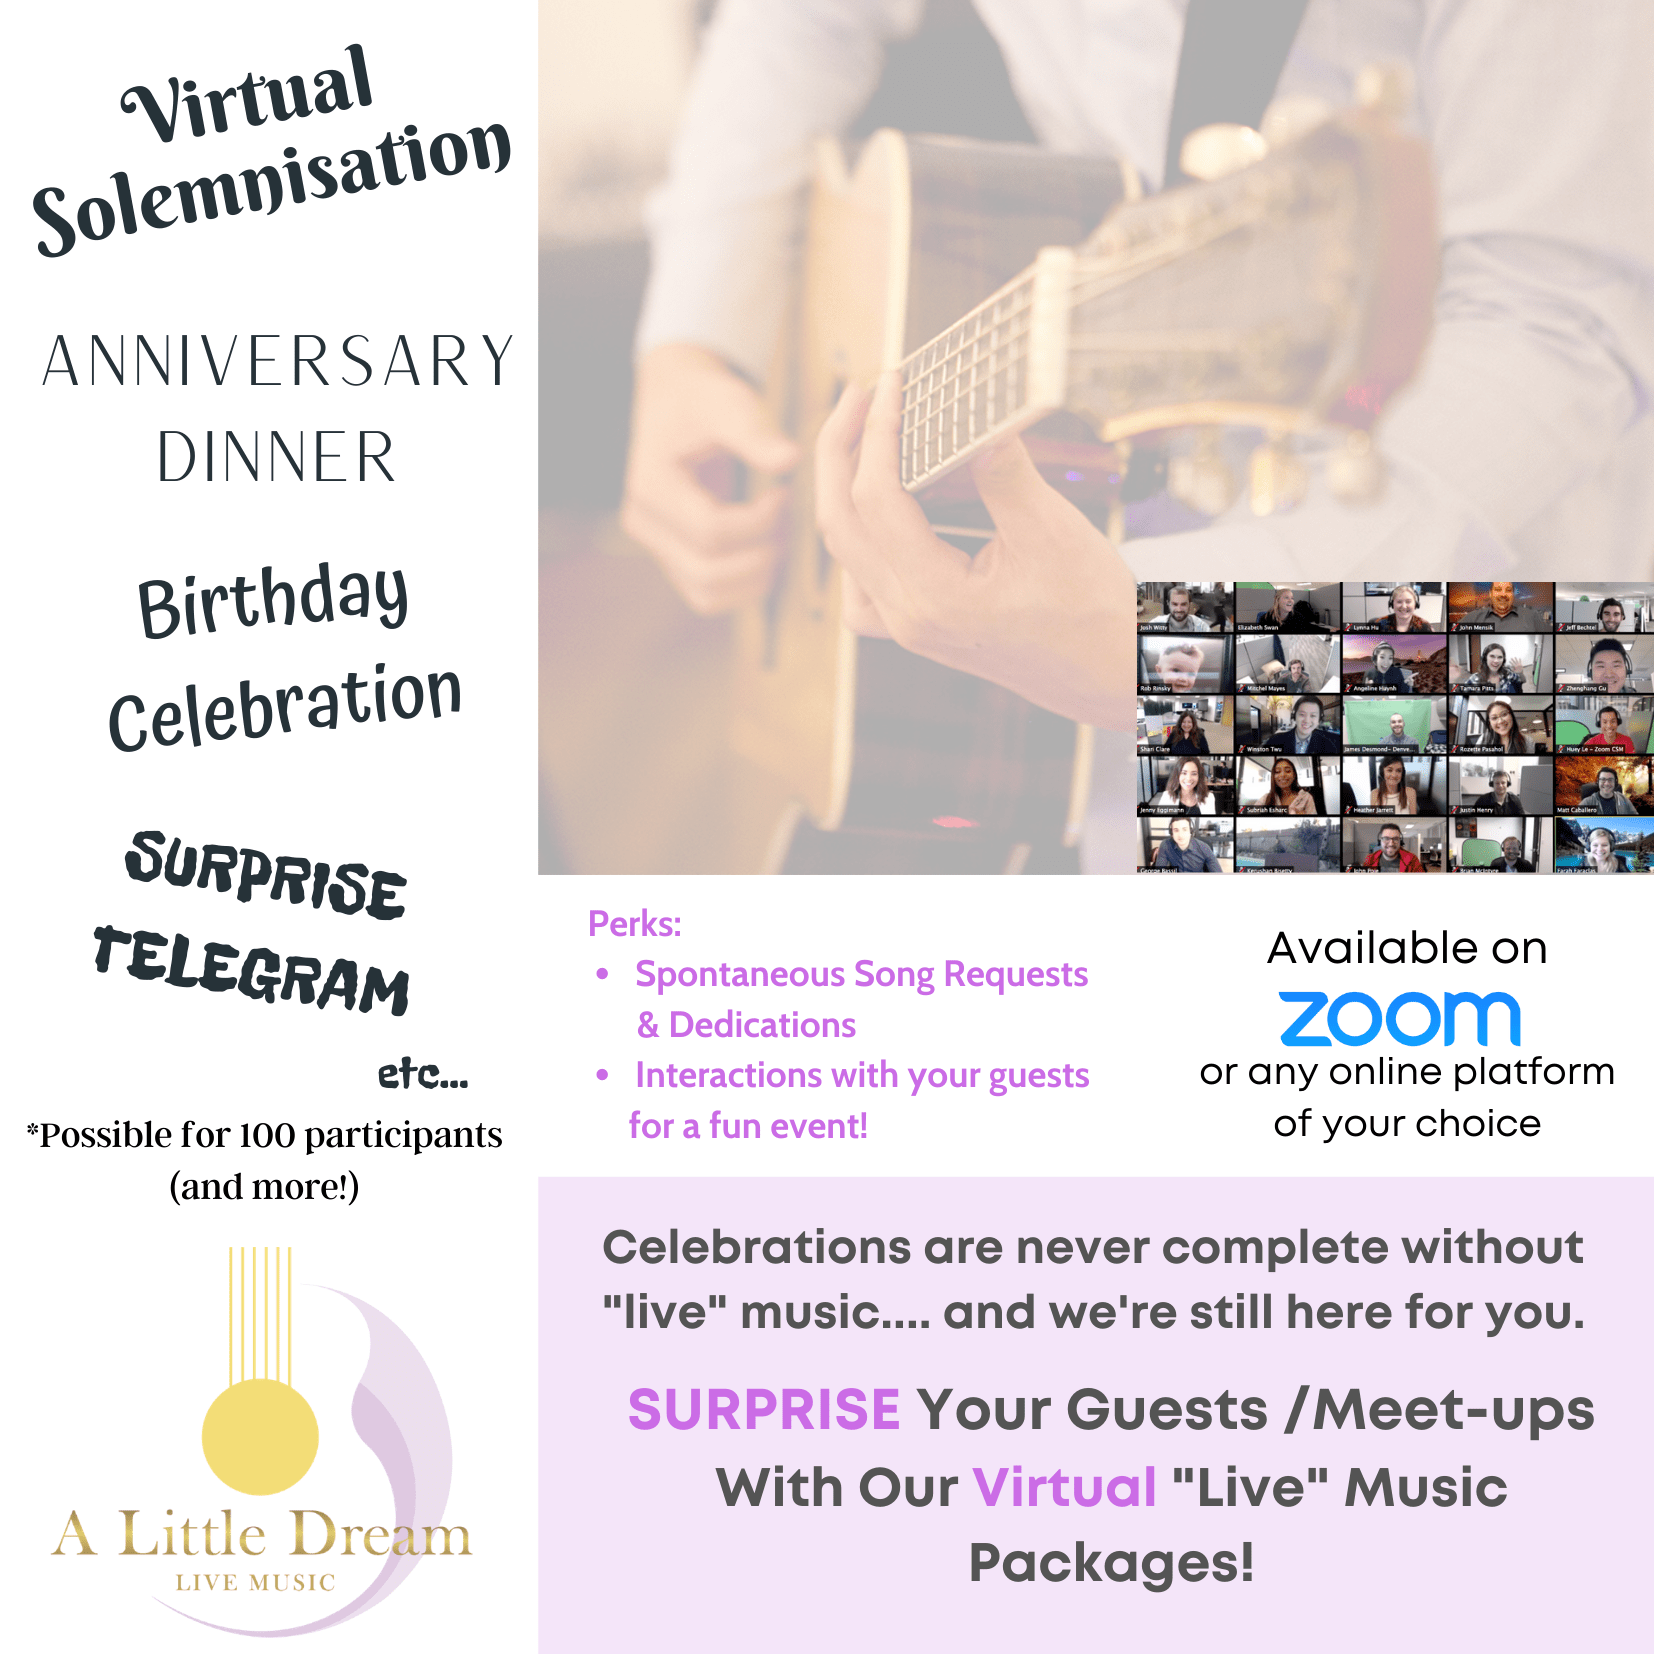 zoom live band music wedding event celebration virtual solemnisation